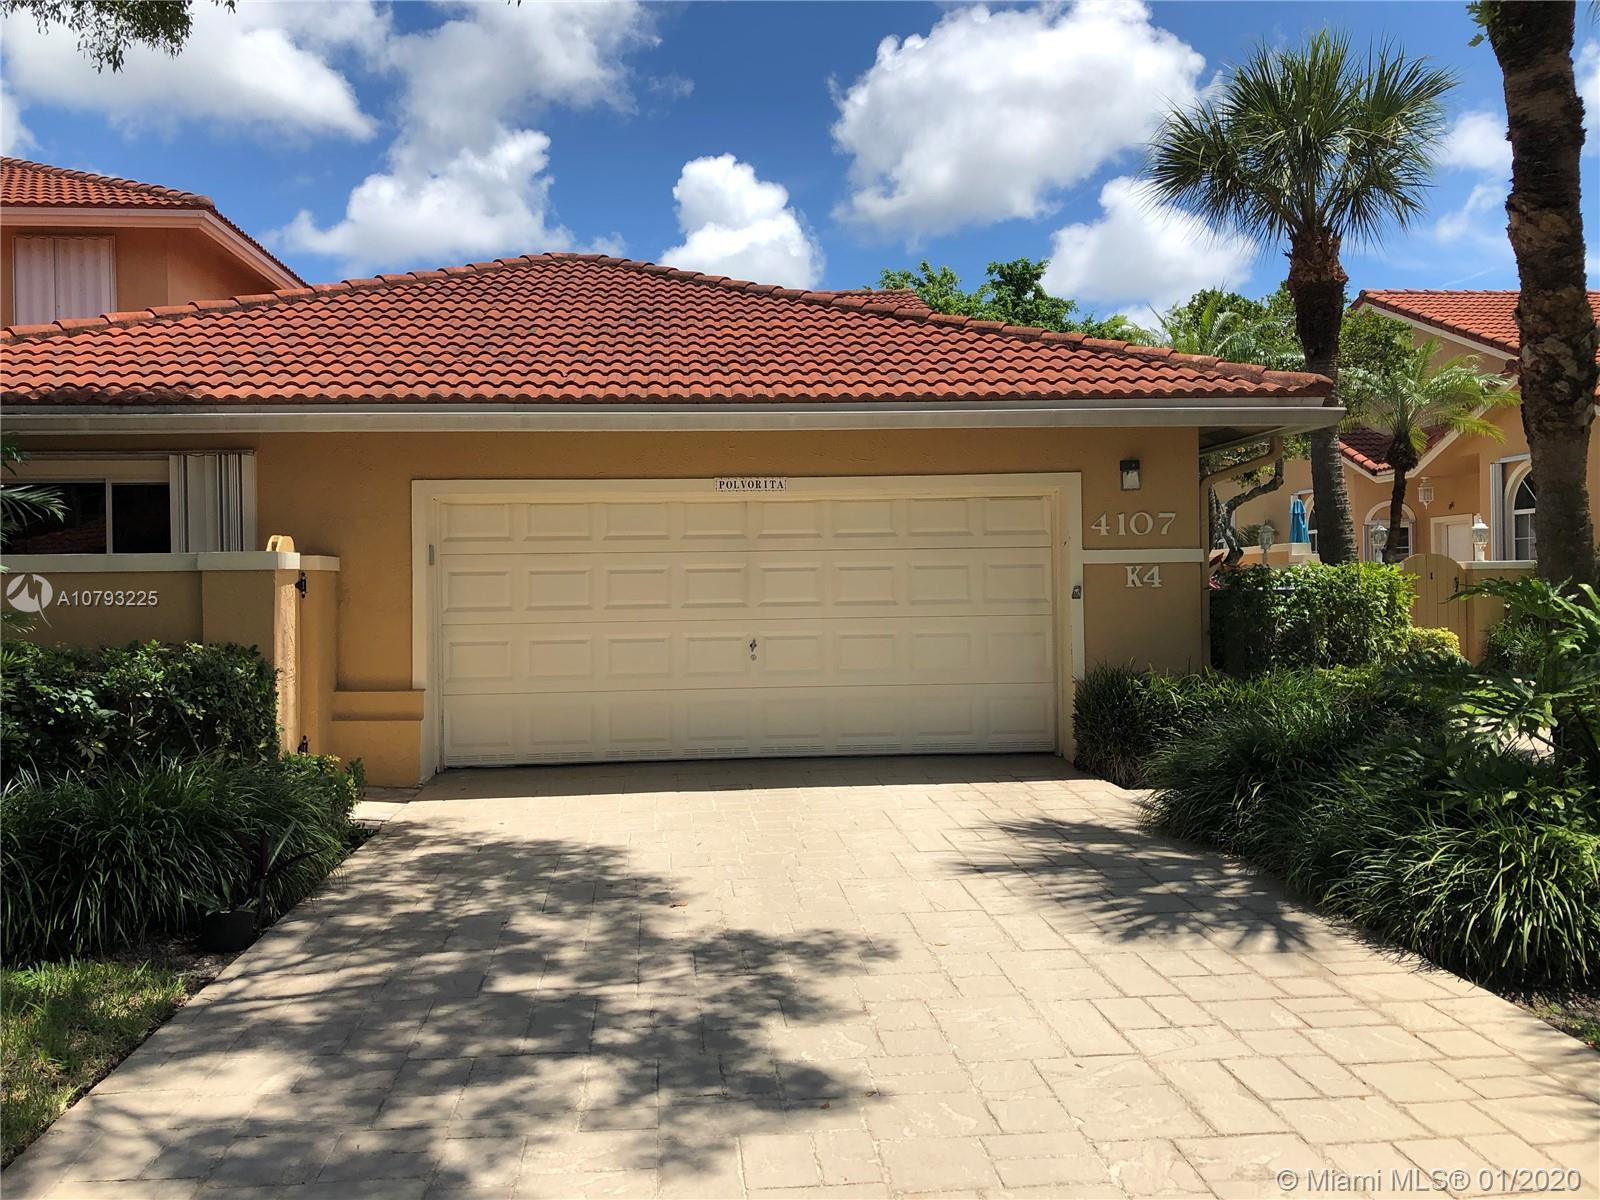 Back on Market!!!! Gorgeous property in the beautiful Misty Oaks section of Palm Aire. Spacious 1 st